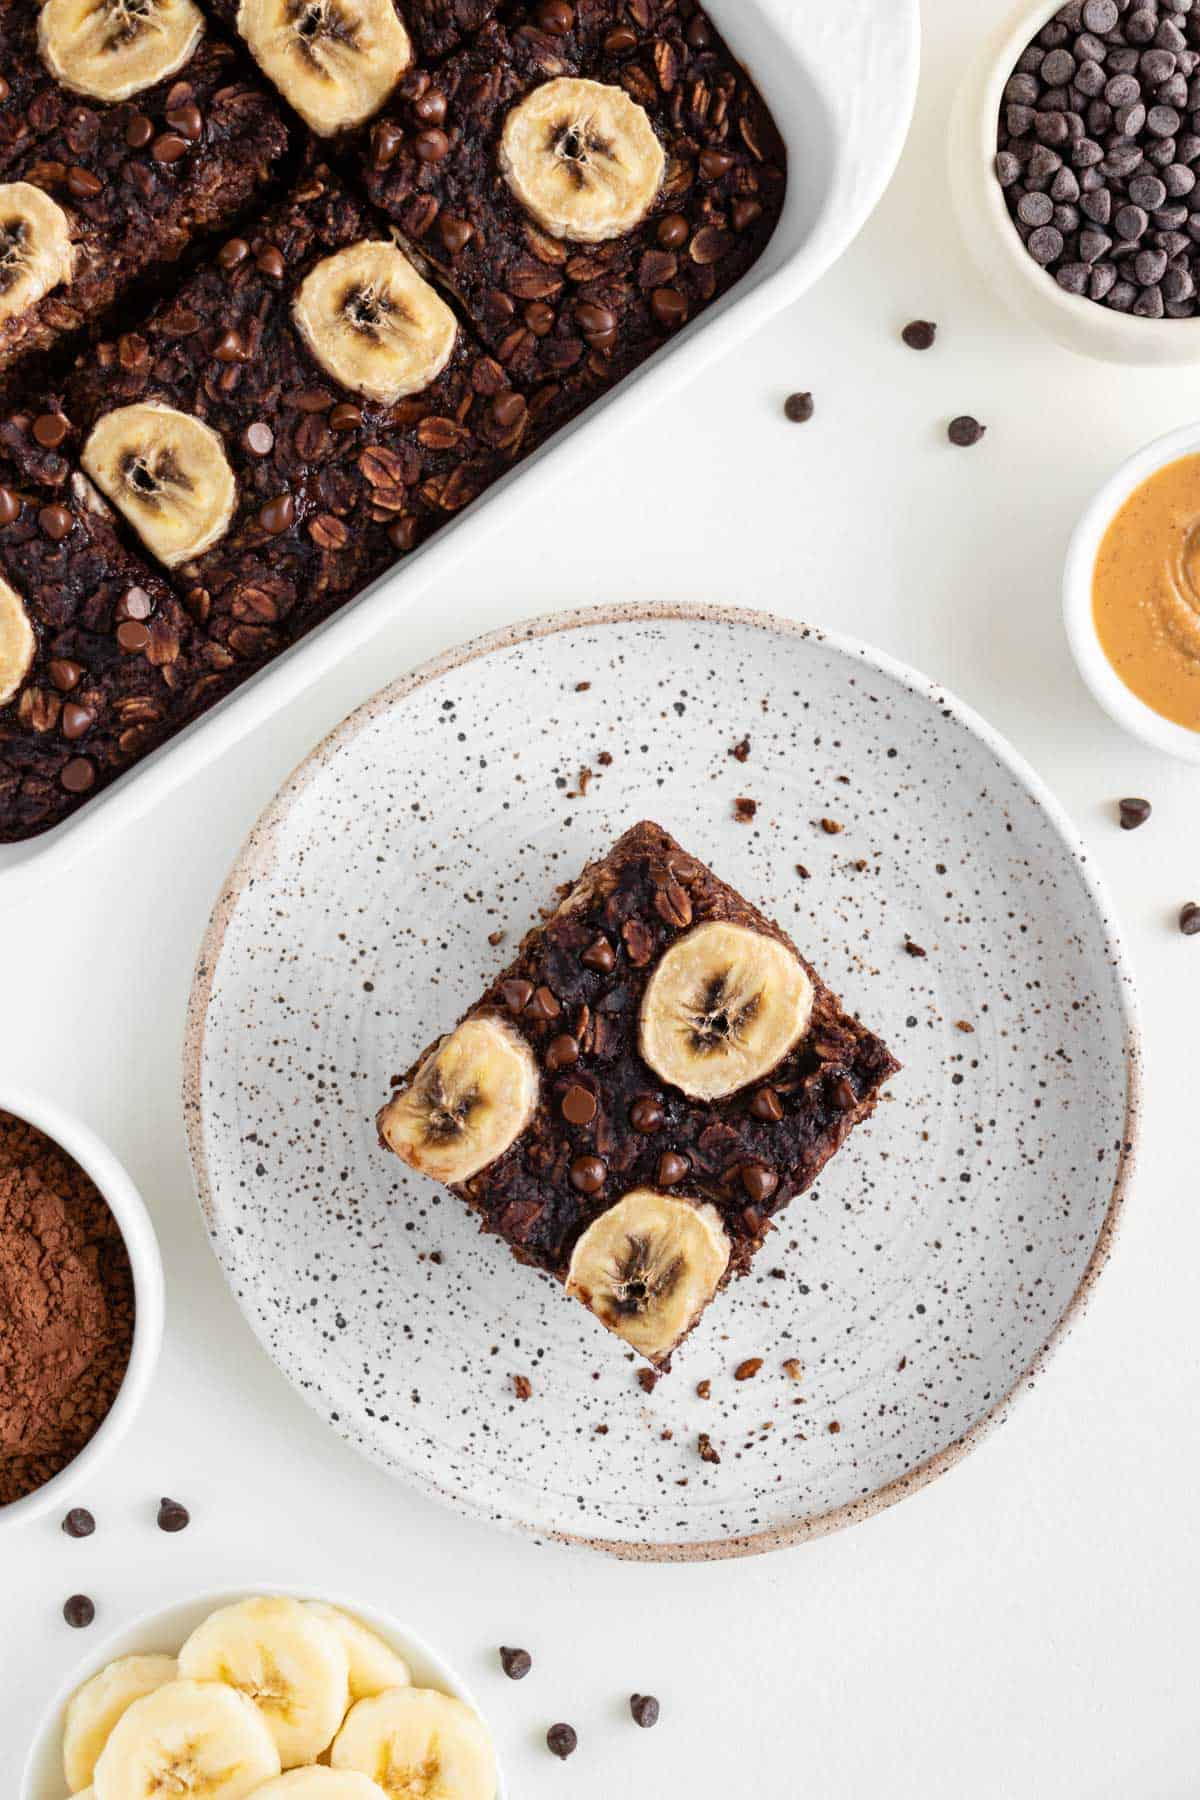 a slice of chocolate baked oatmeal topped with banana and chocolate chips on a white plate surrounded by a small bowl of rolled oats and cacao powder